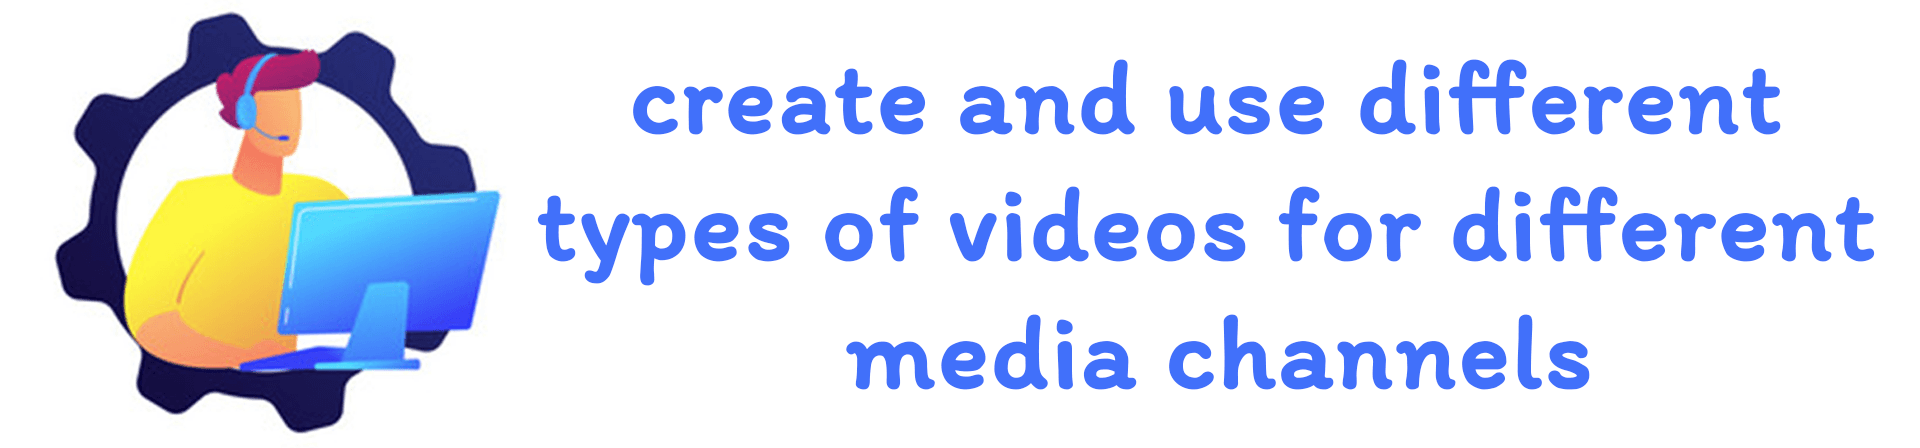 Advice: create and use different types of videos for different media channels